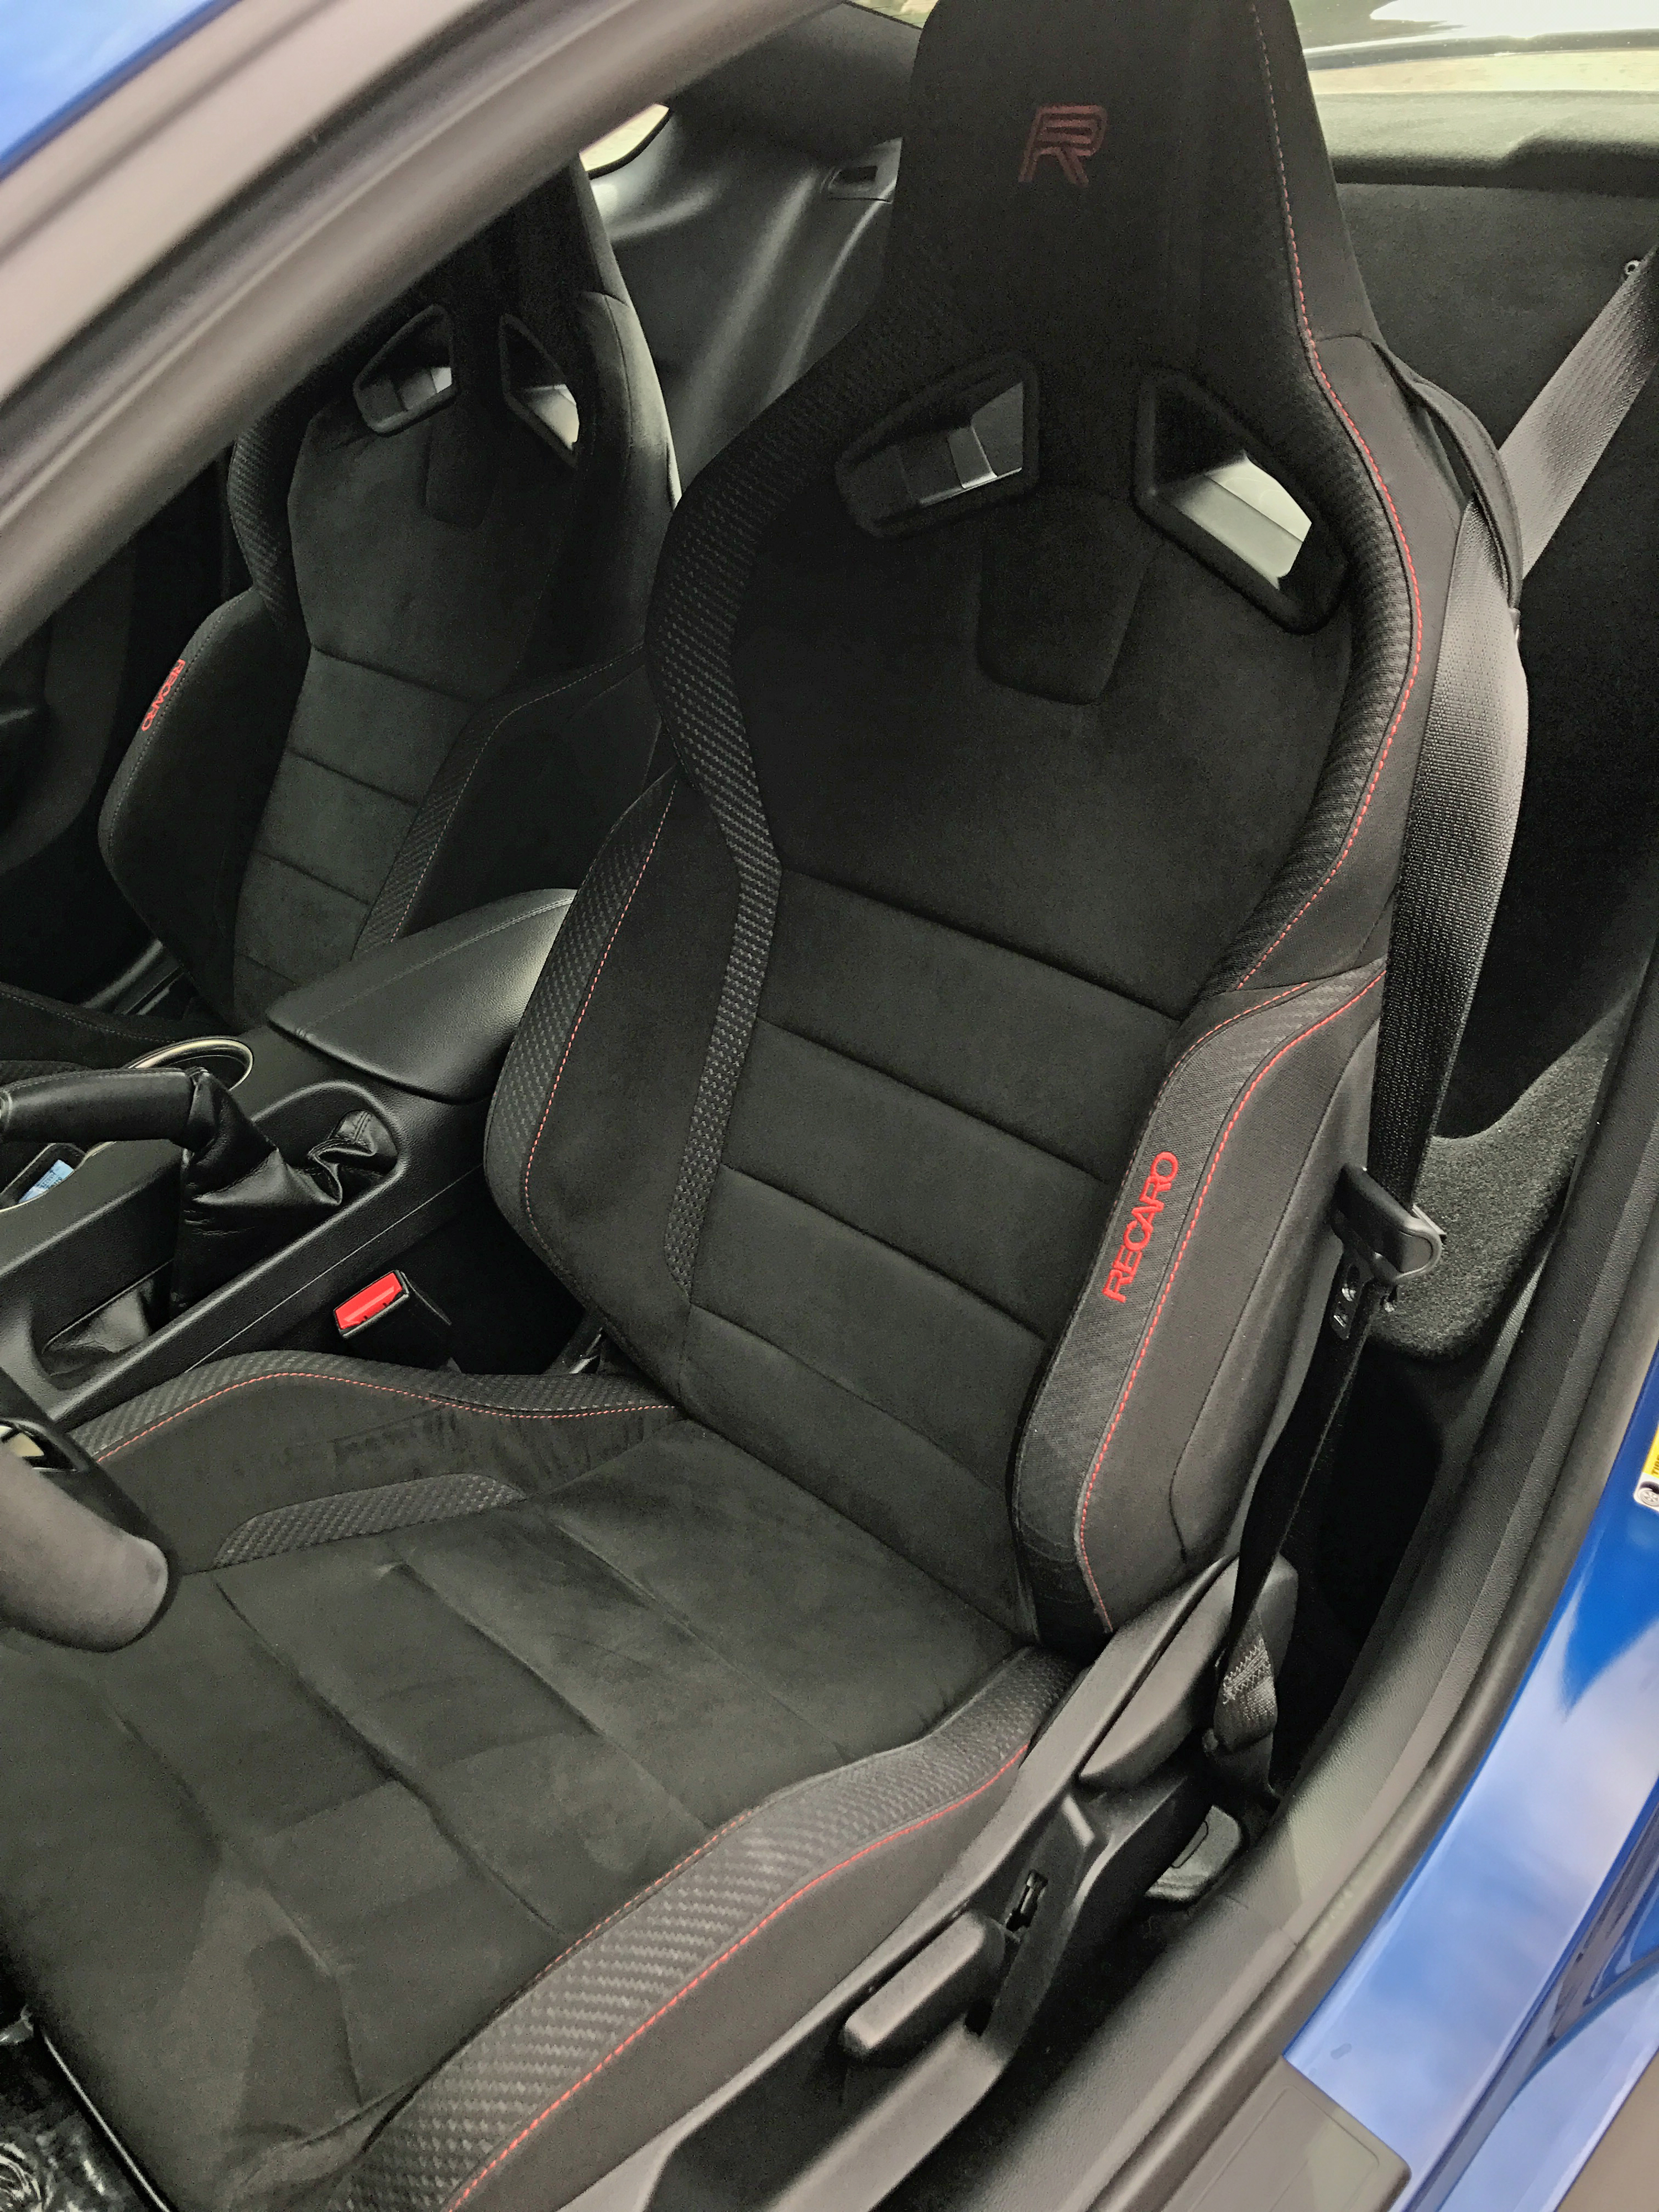 2017 Ford Mustang Shelby GT350R Seat